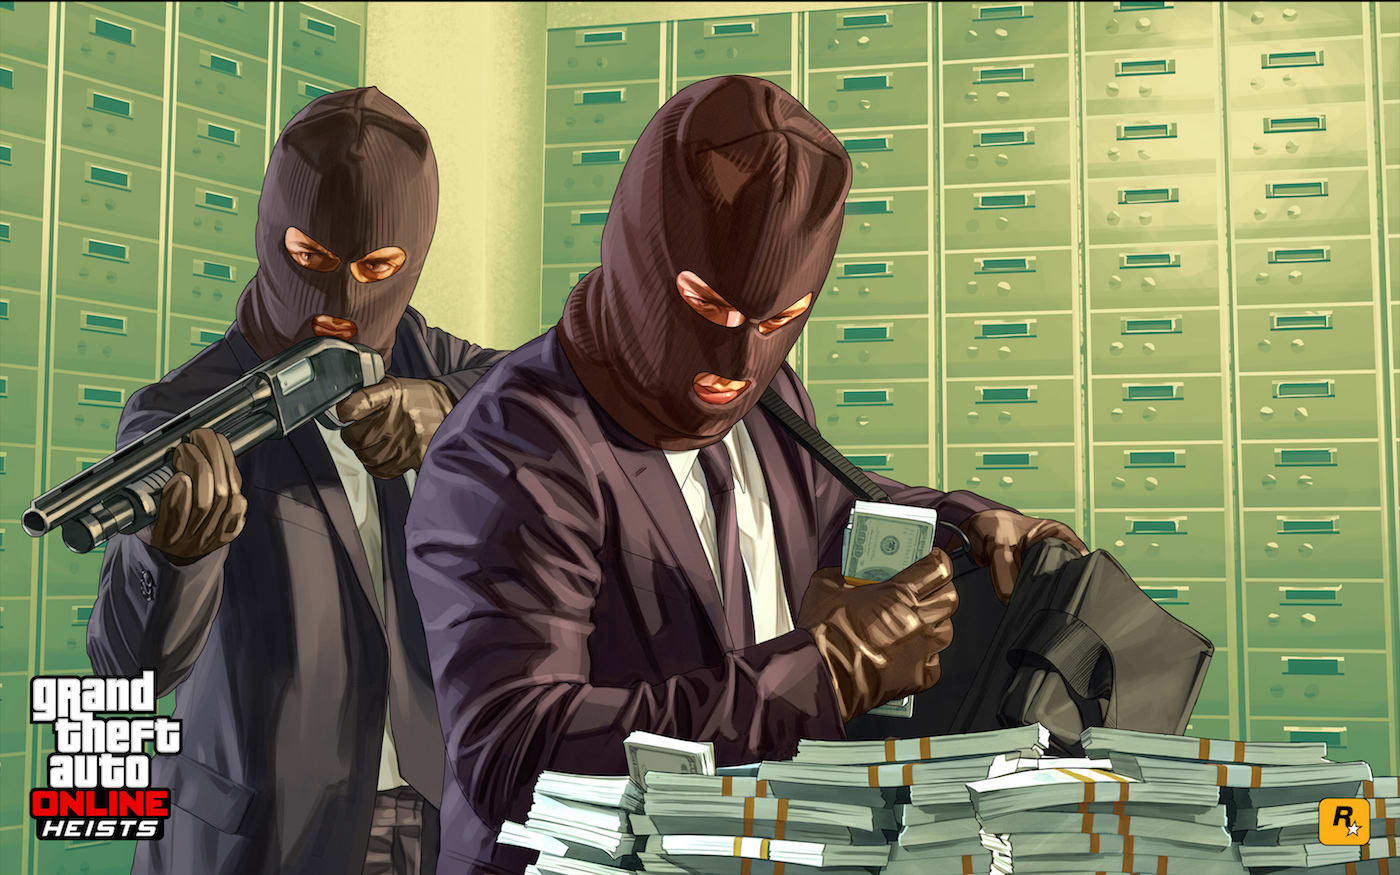 Grand Theft Auto 5' outsold almost every game in January